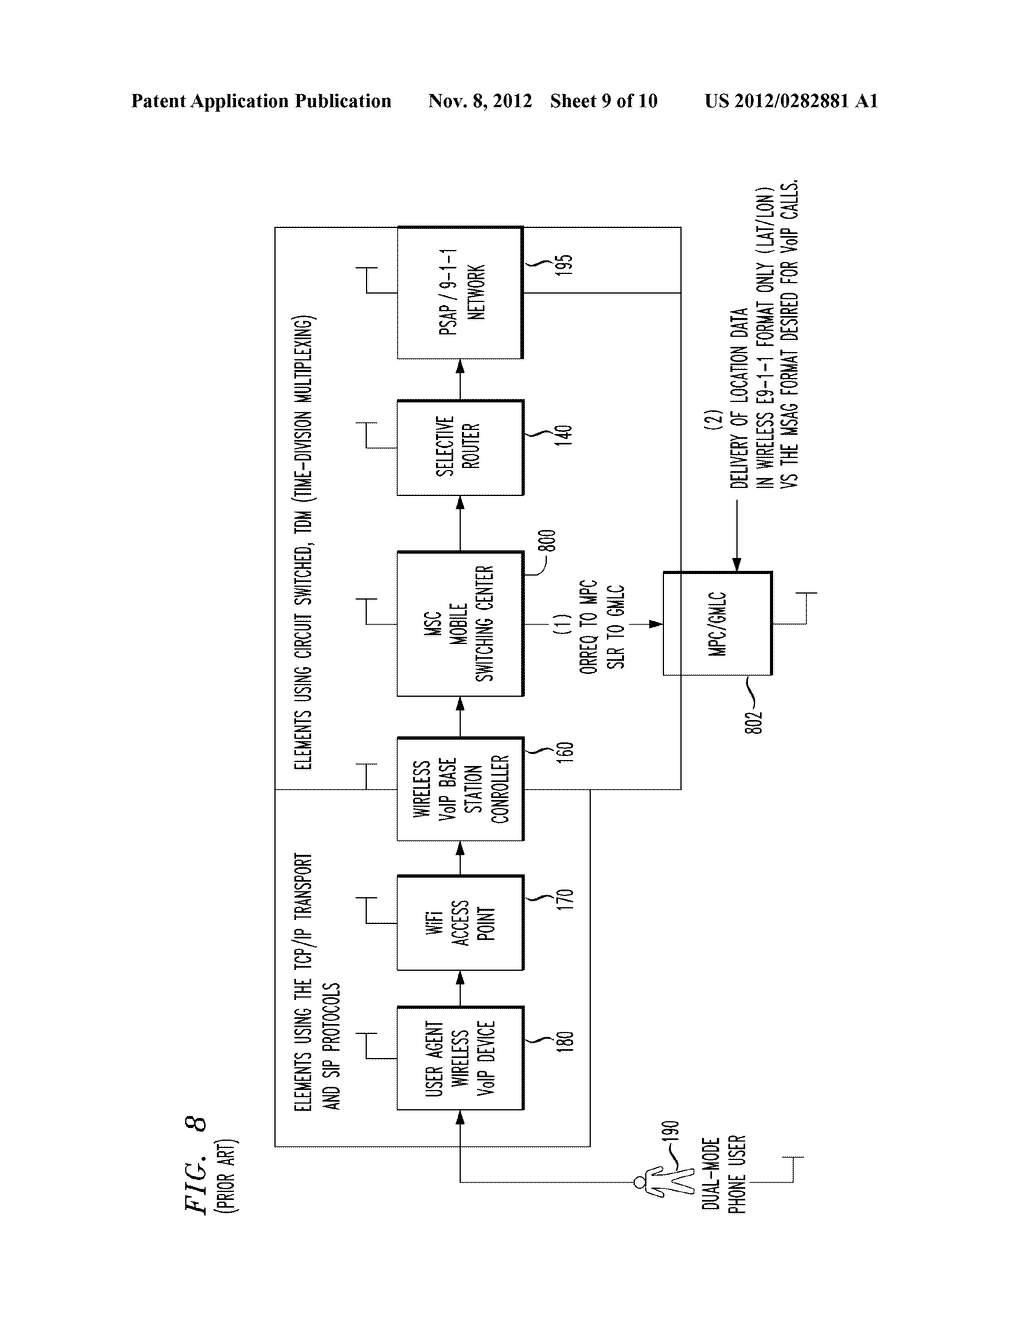 hight resolution of ss7 ansi 41 to sip based call signaling conversion gateway for wireless voip e911 diagram schematic and image 10